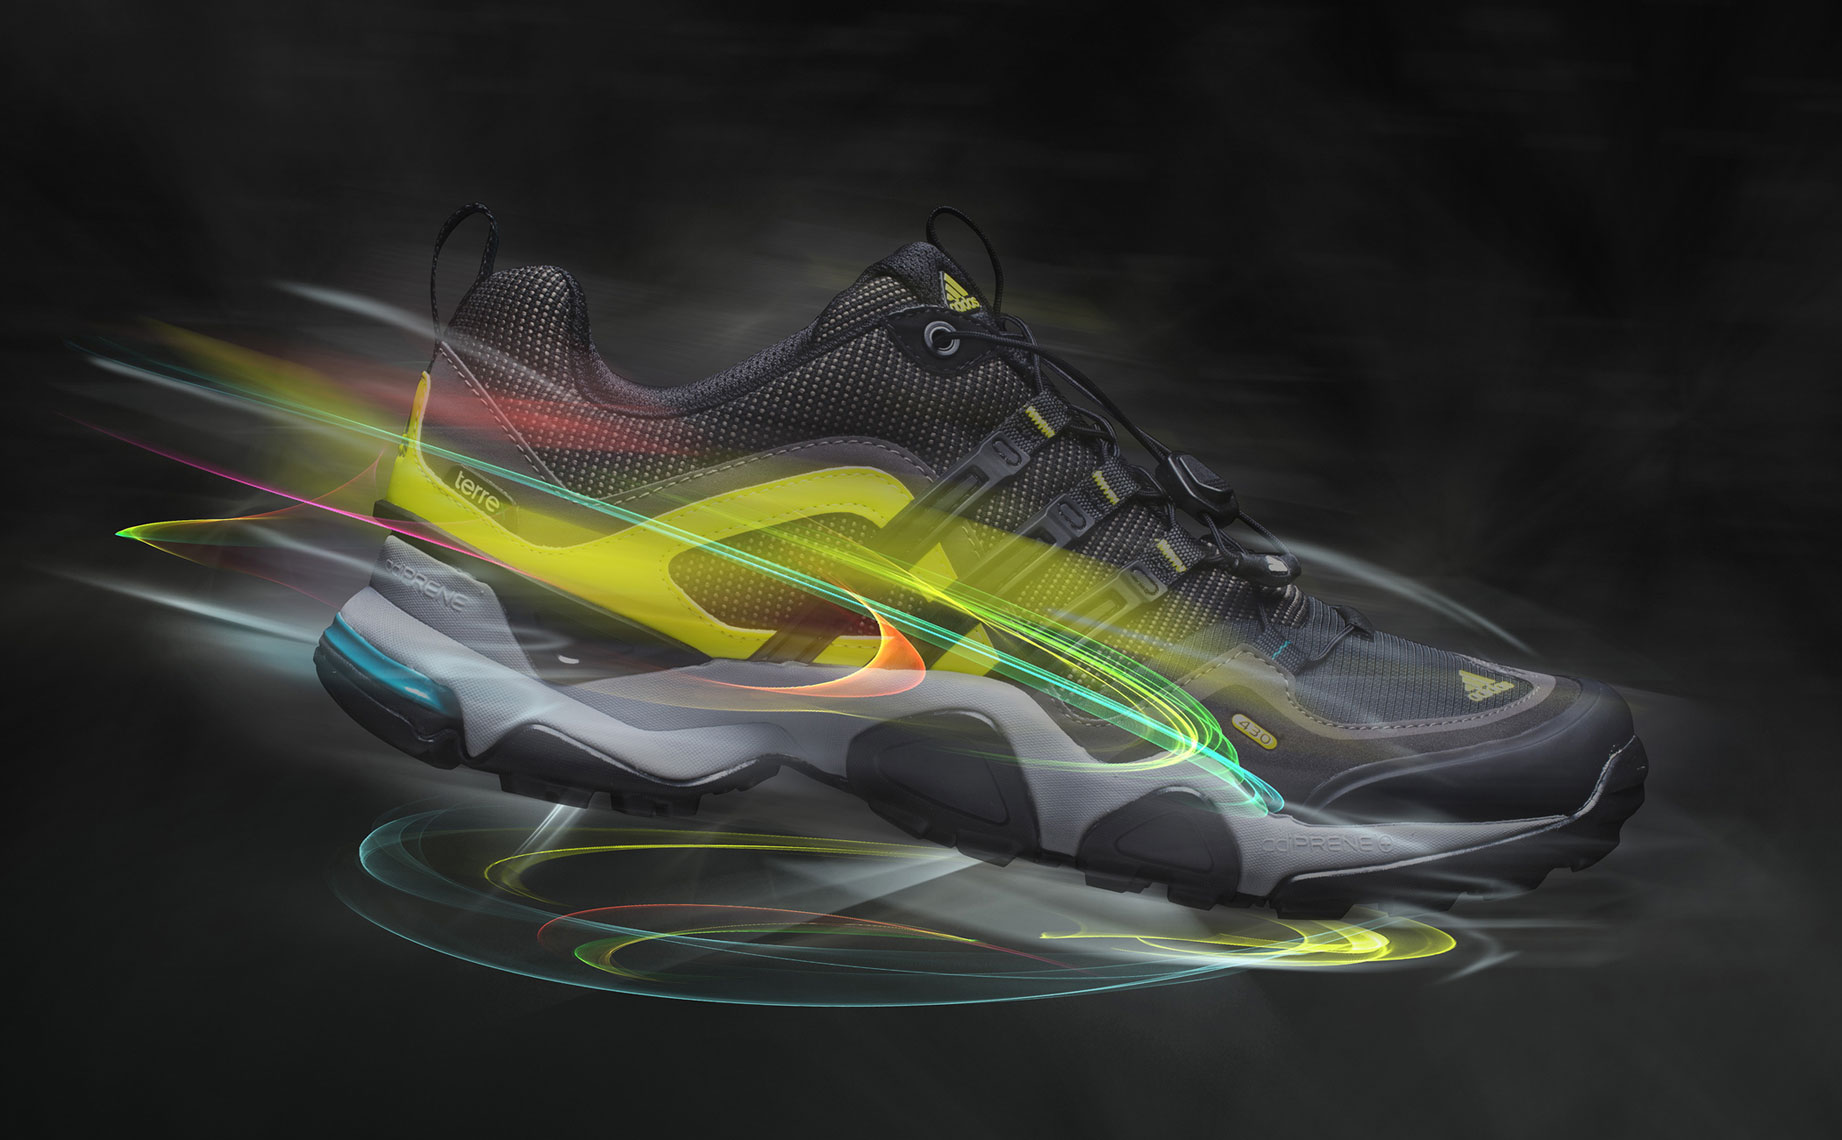 Product Photography Adidas Terre X Shoes Profile Floating with Glowing Light Trails Chicago